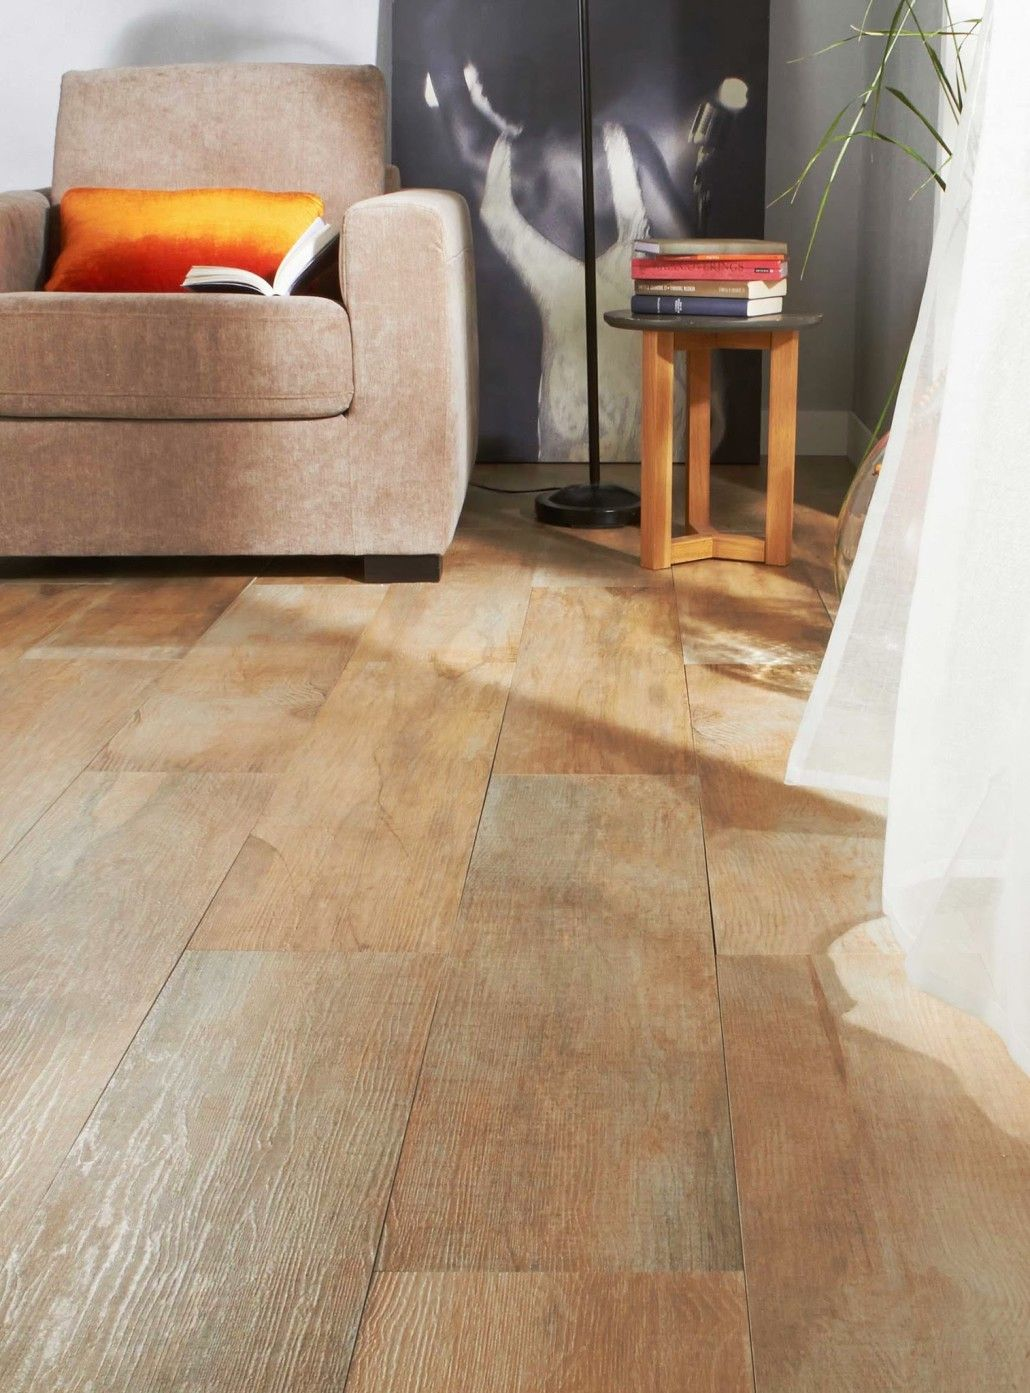 Revetement Carrelage Imitation Parquet Flottant Design